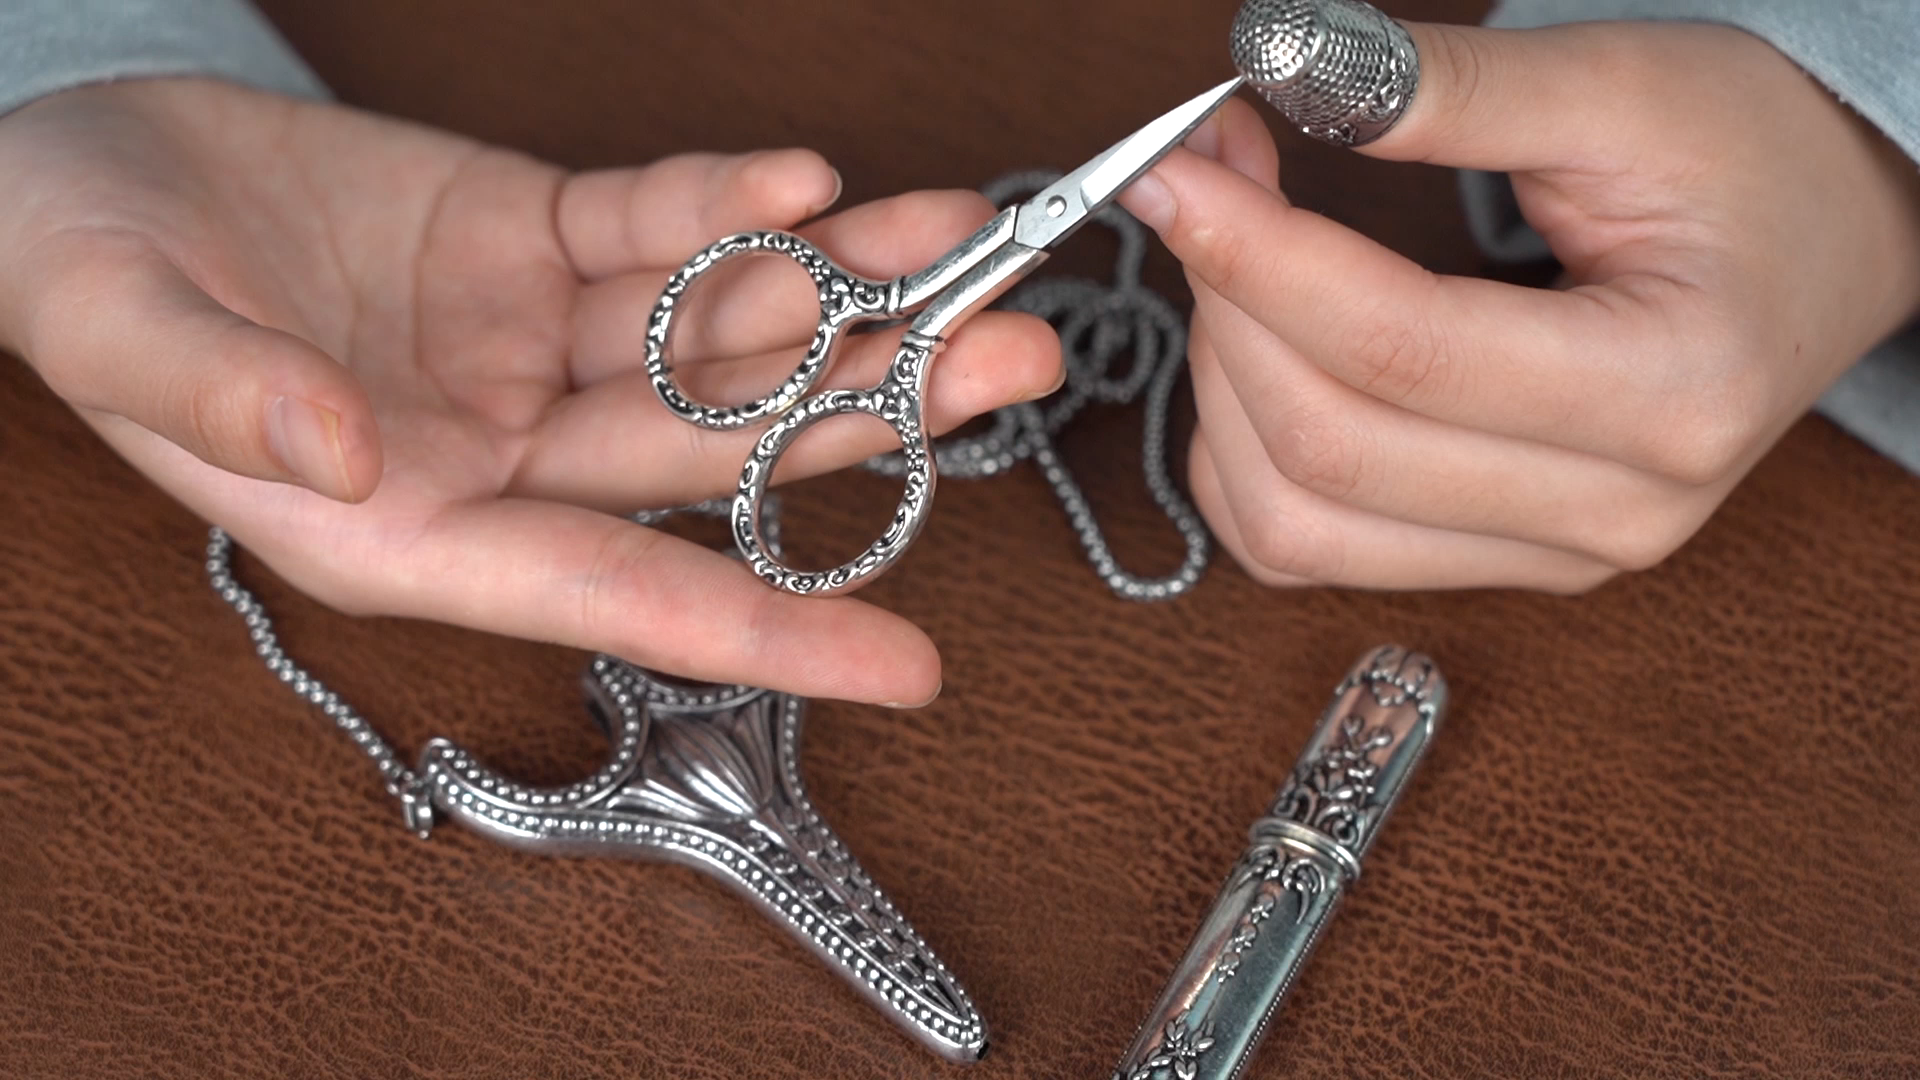 Stainless Steel Safety Sewing Scissors set with Sheath Chain,Needle Tube,Thimble for Embroidery and Sewing Work